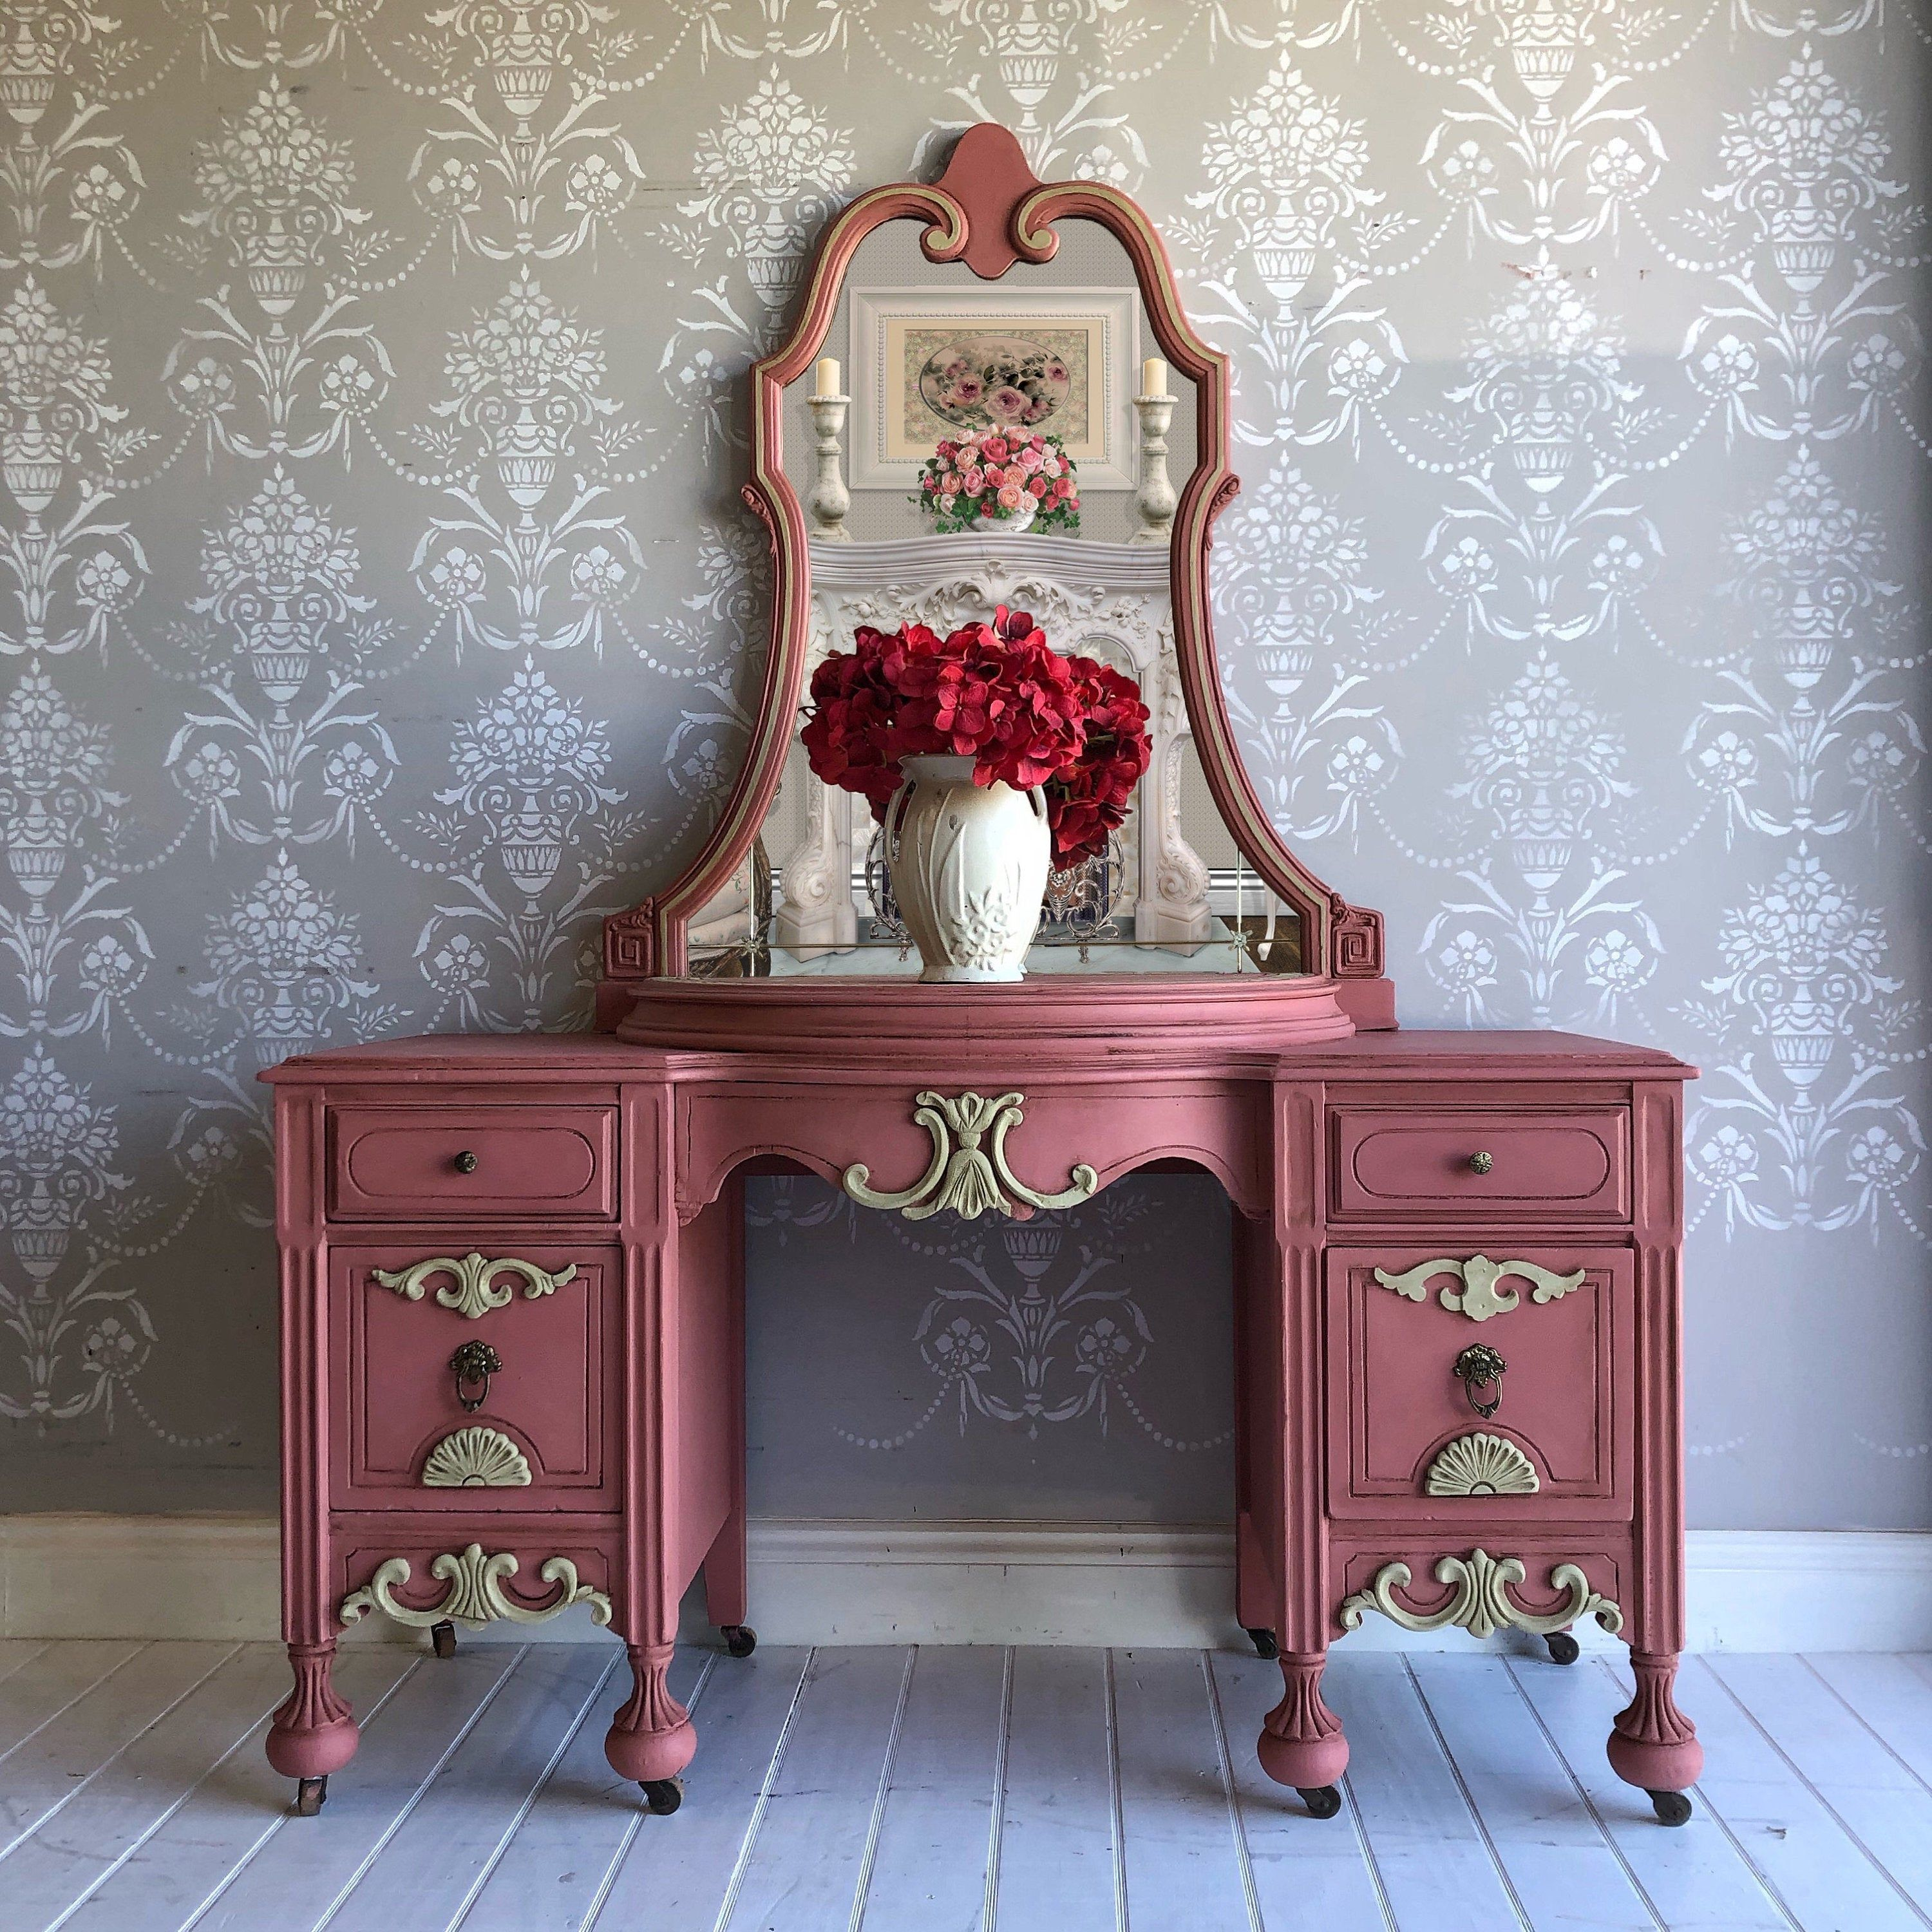 Pin By Reloved Home Designs Llc On Repurposed Furniture In 2020 Painted Table Painted Furniture Upcycled Vintage